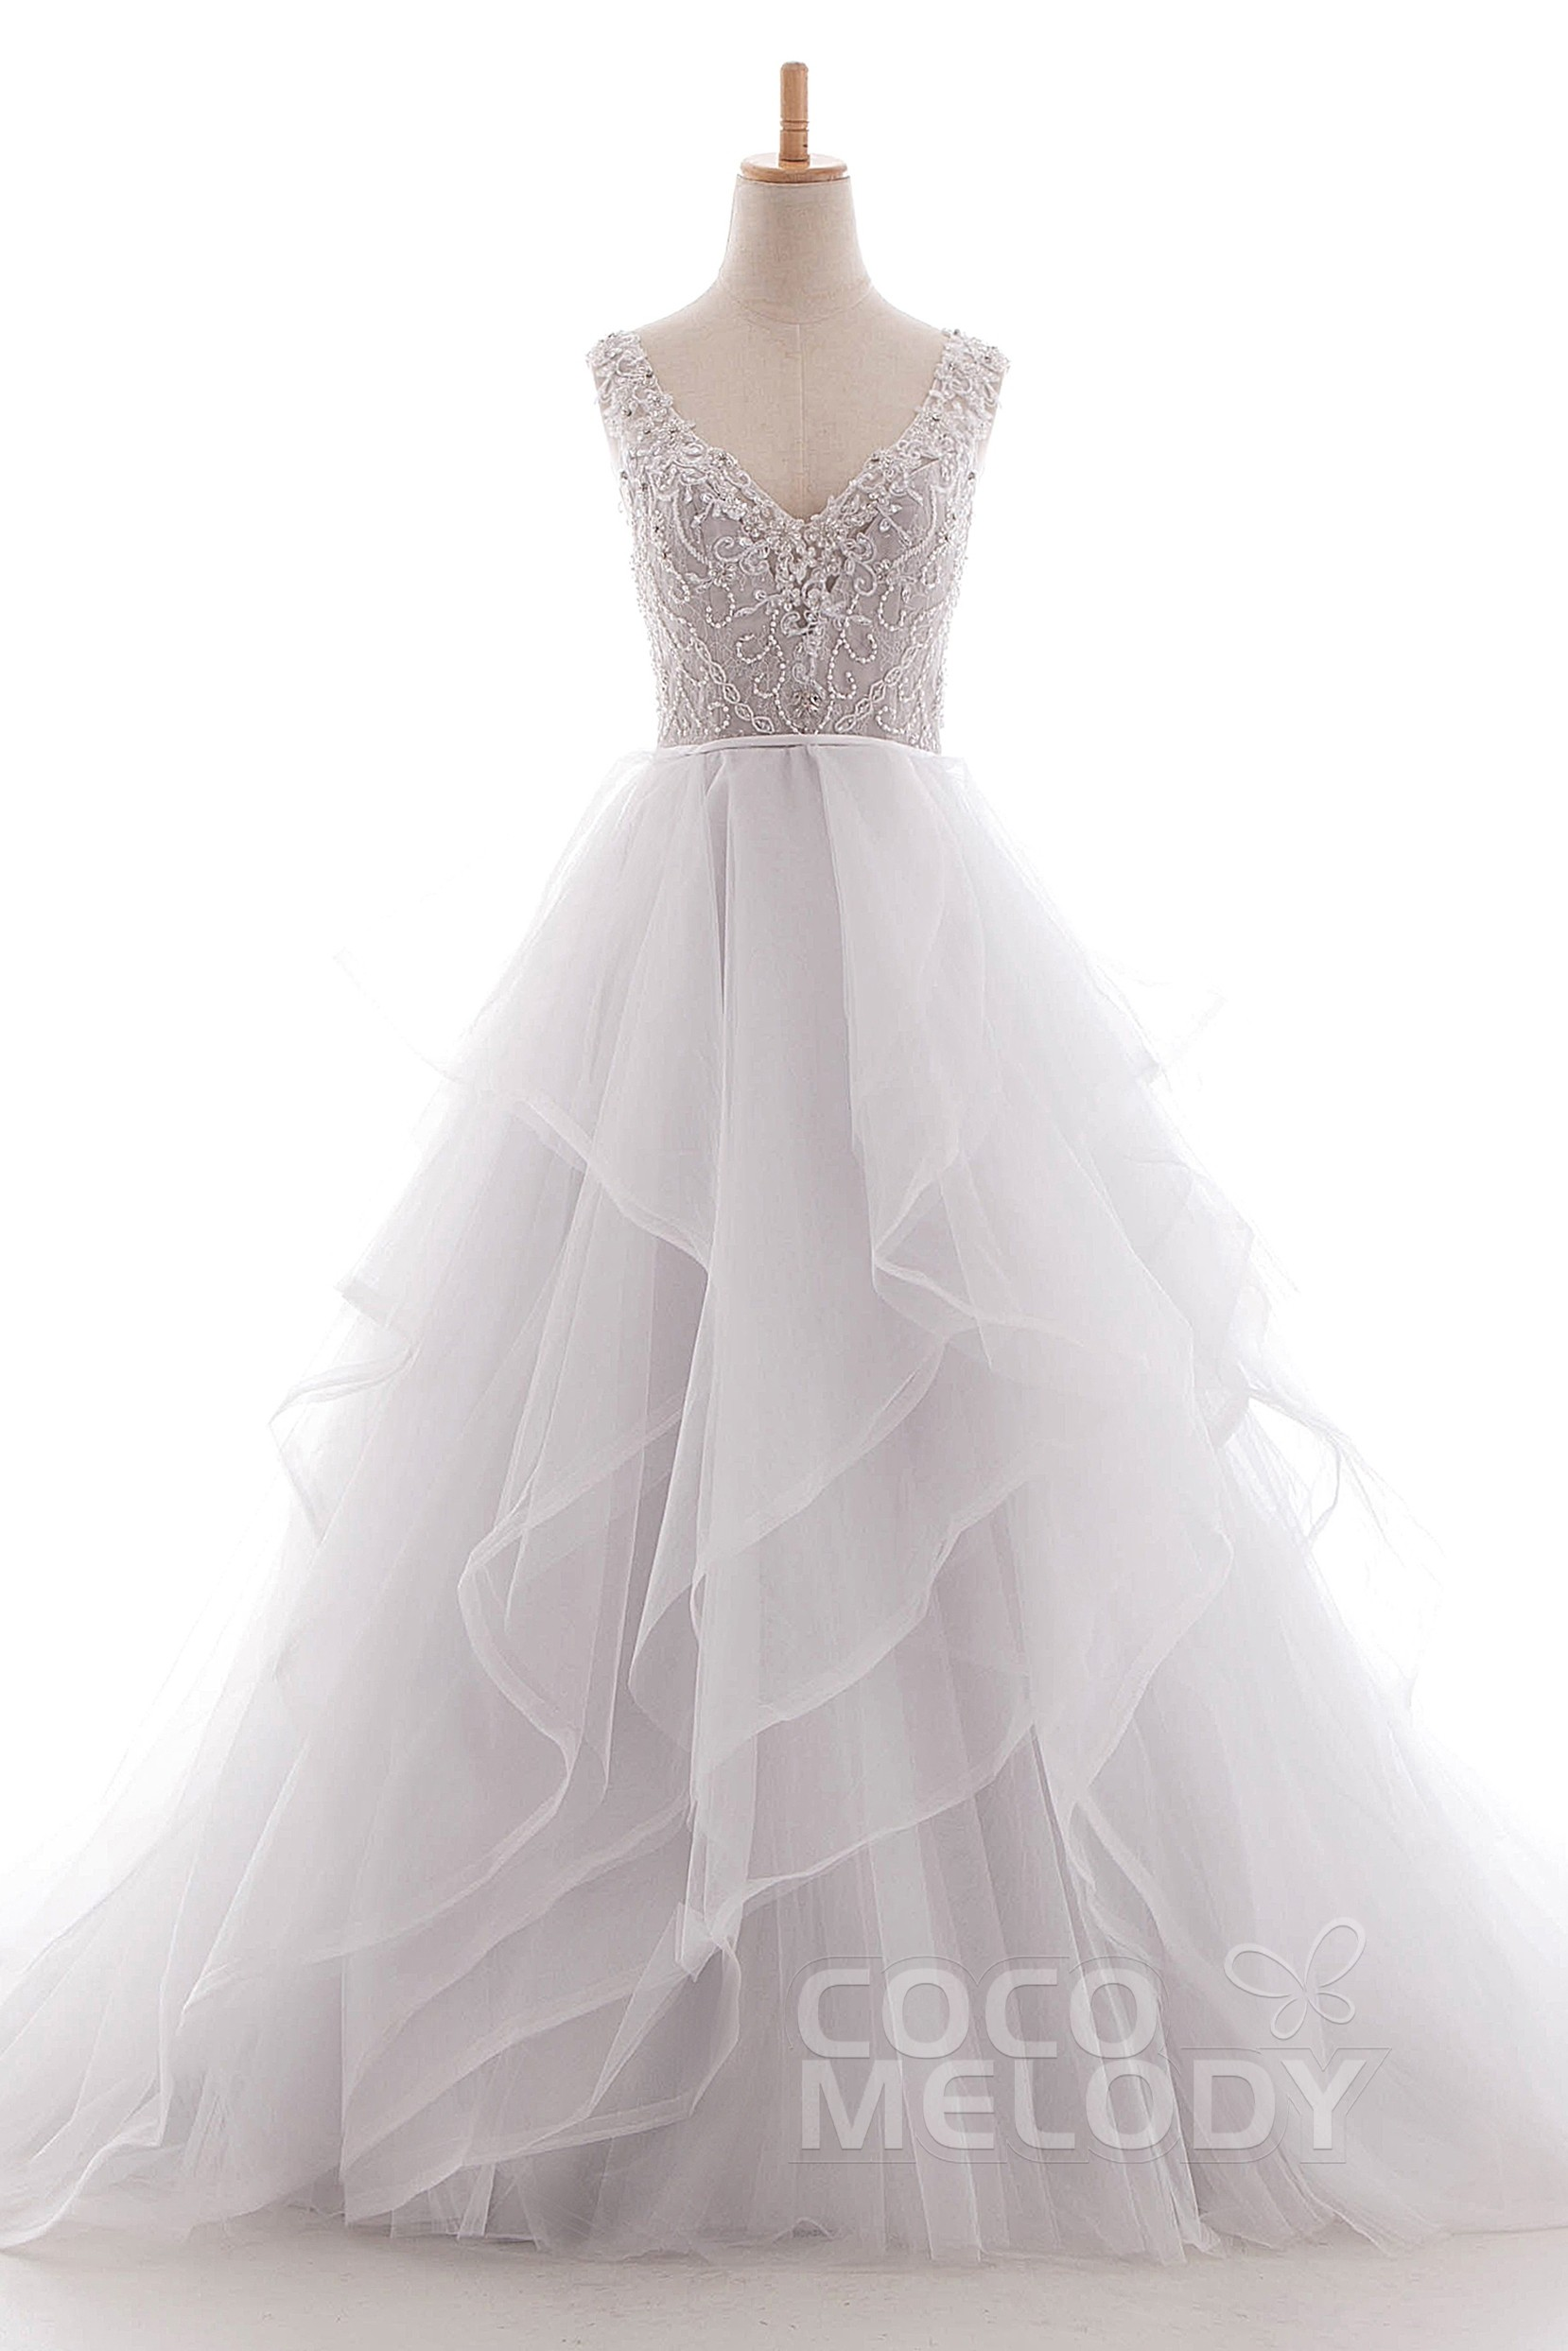 A-Line Court Train Tulle Lace Organza Wedding Dress LD4981 | Cocomelody